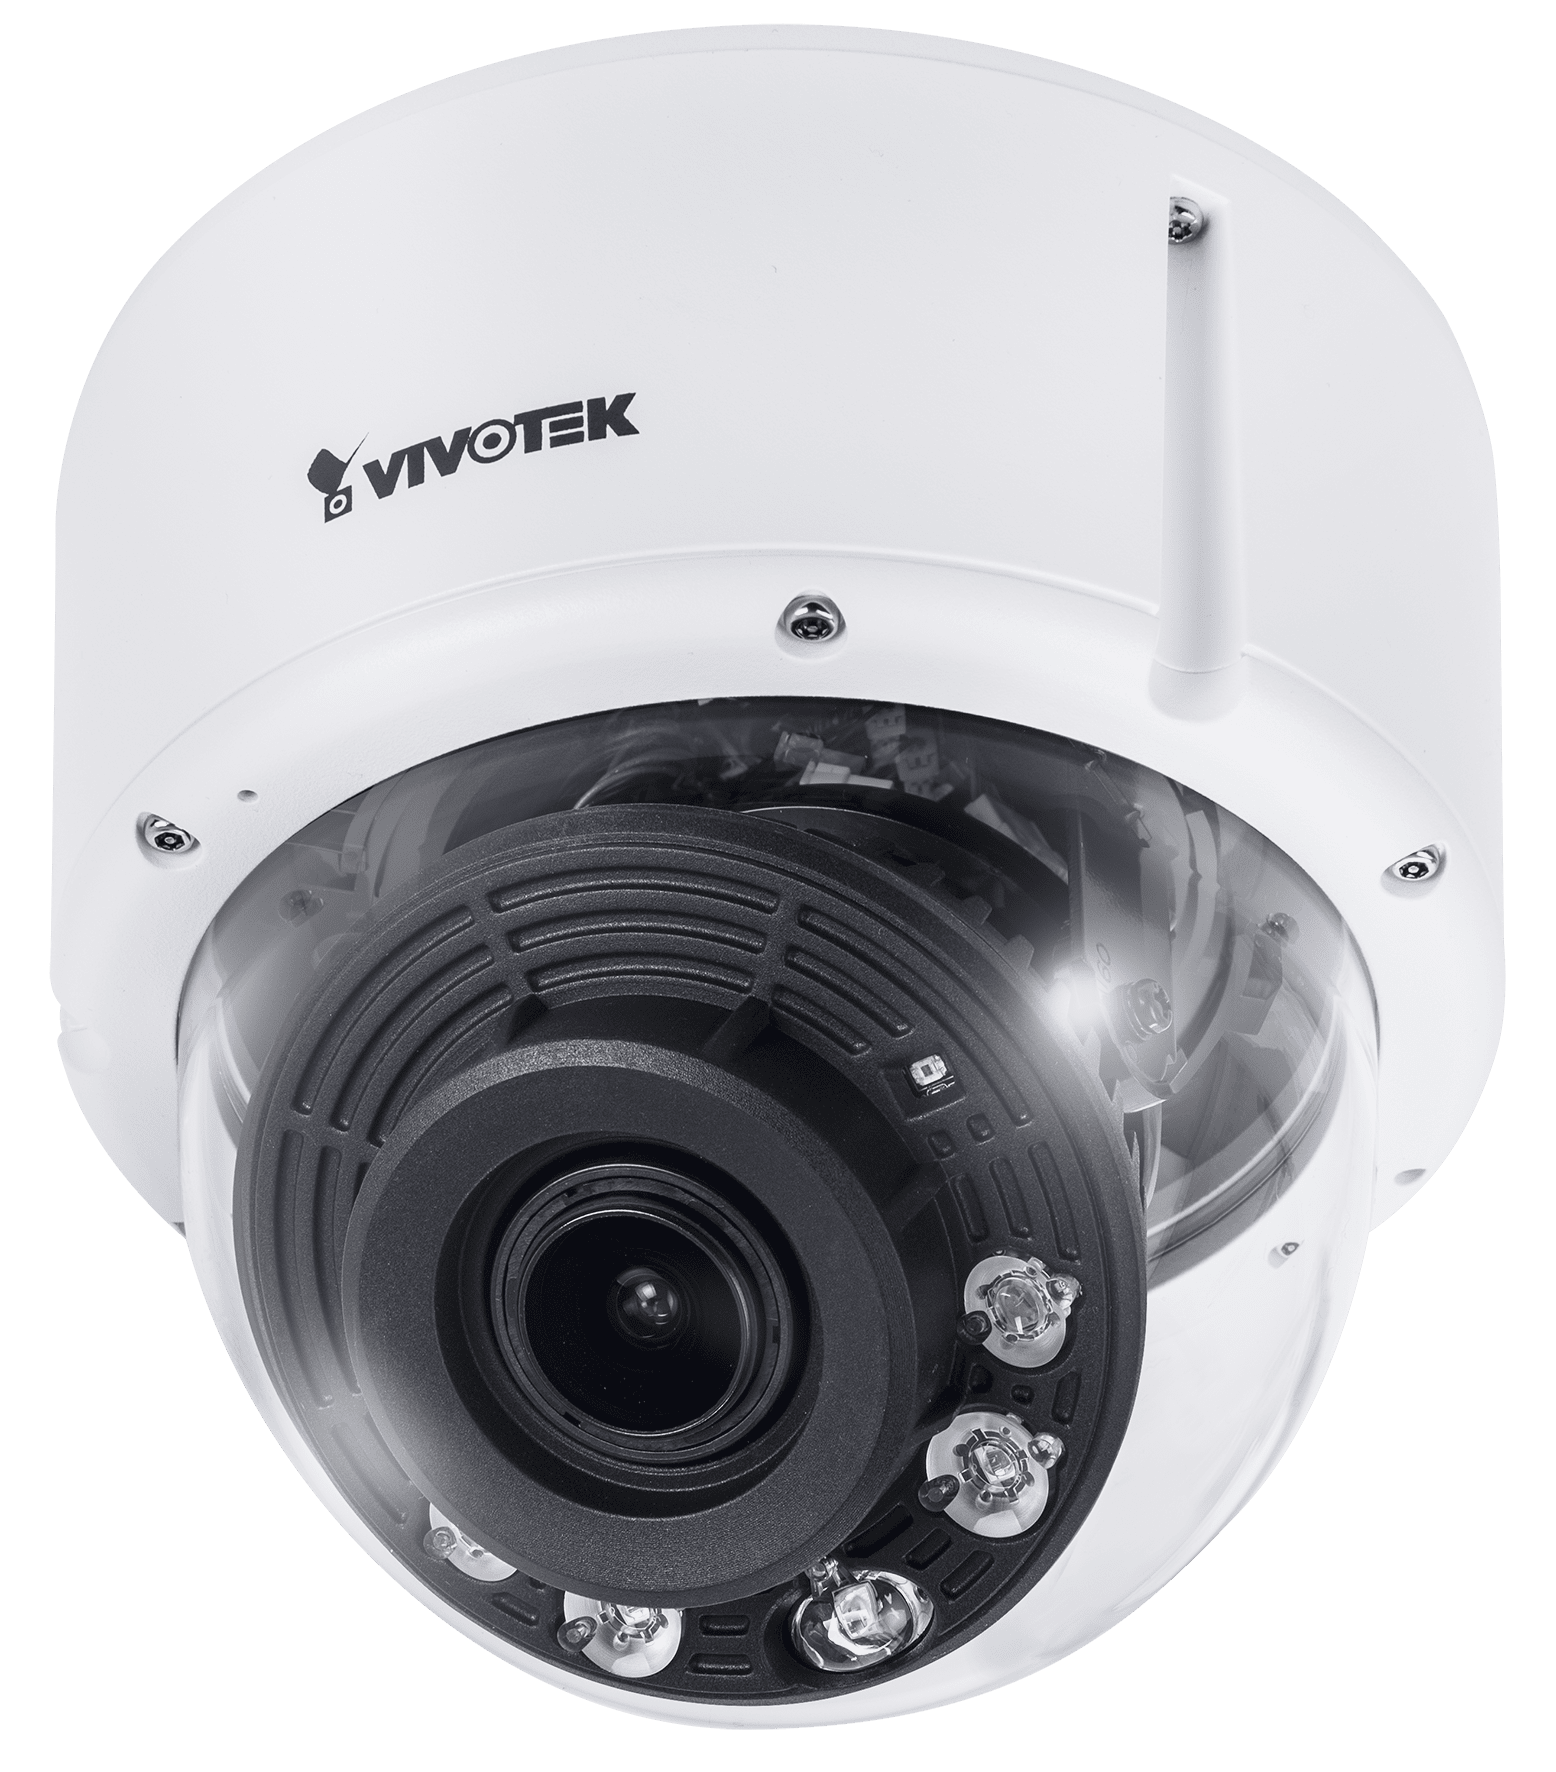 Fd9365 Htv Fixed Dome Network Camera Vivotek Wiring Diagram Furthermore Security On Download